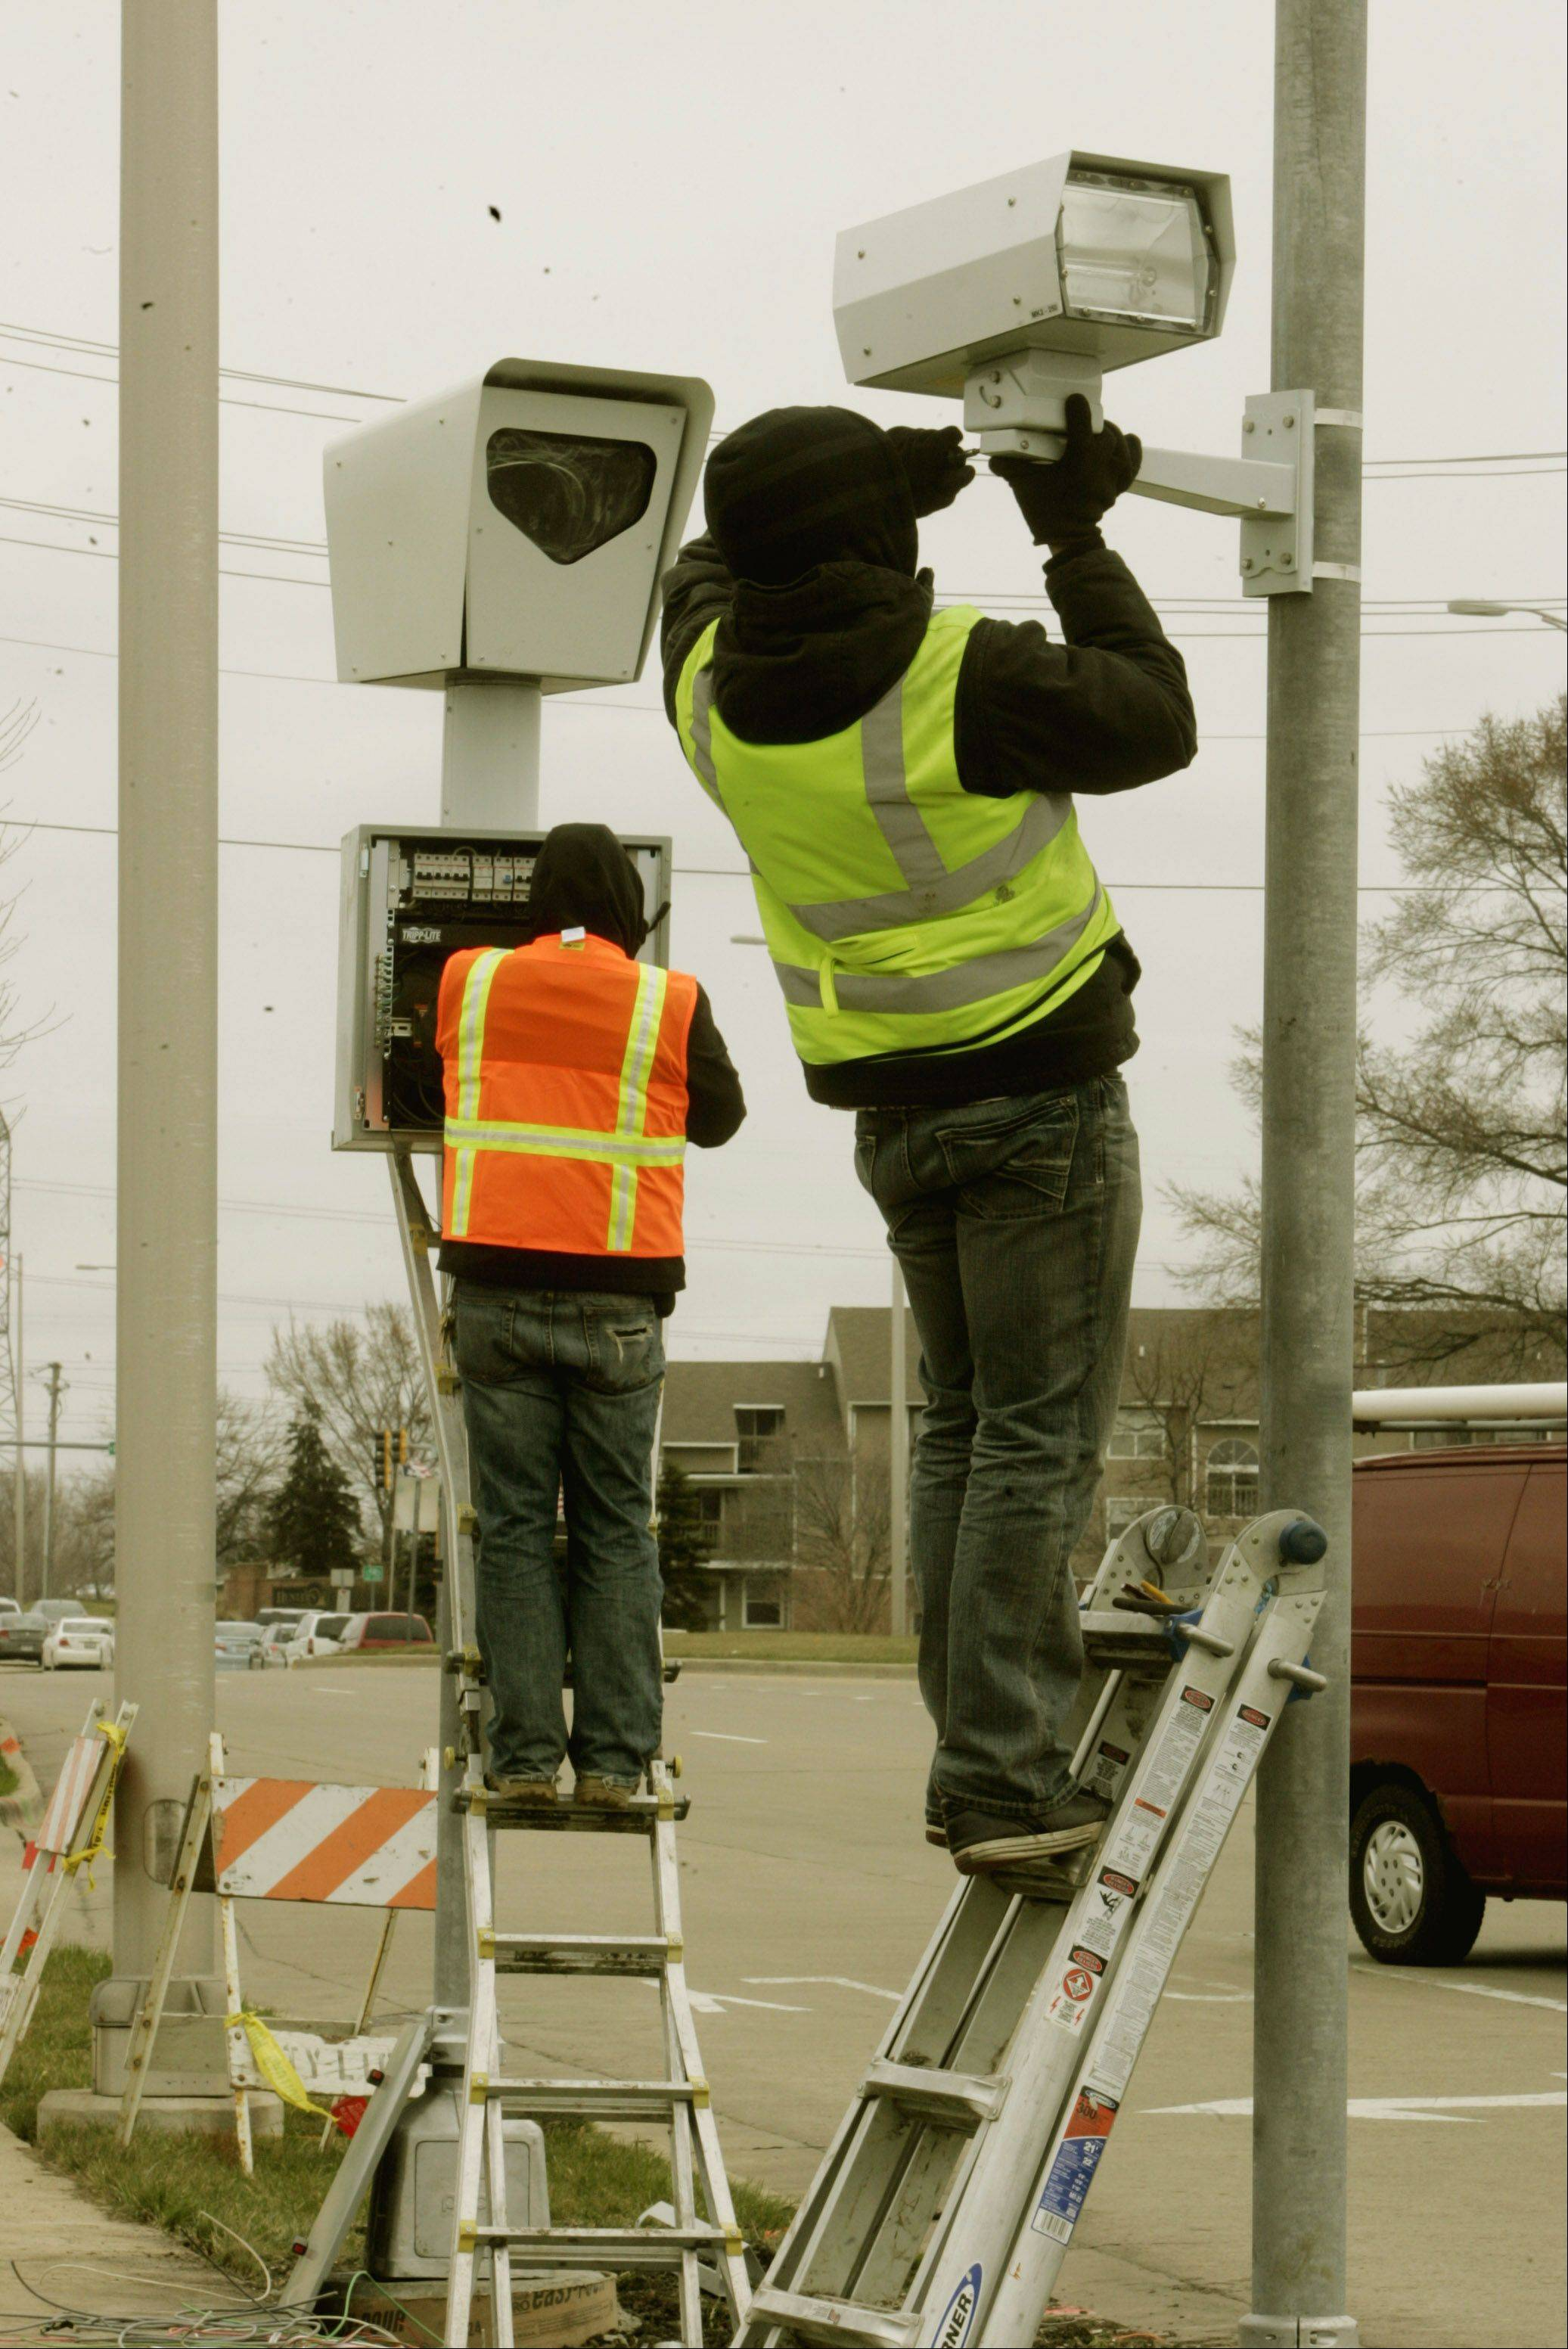 We often gripe about seeing these red-light cameras throughout the suburbs, but some suburban schools tout surveillance cameras that let parents log on to a website to watch their children.